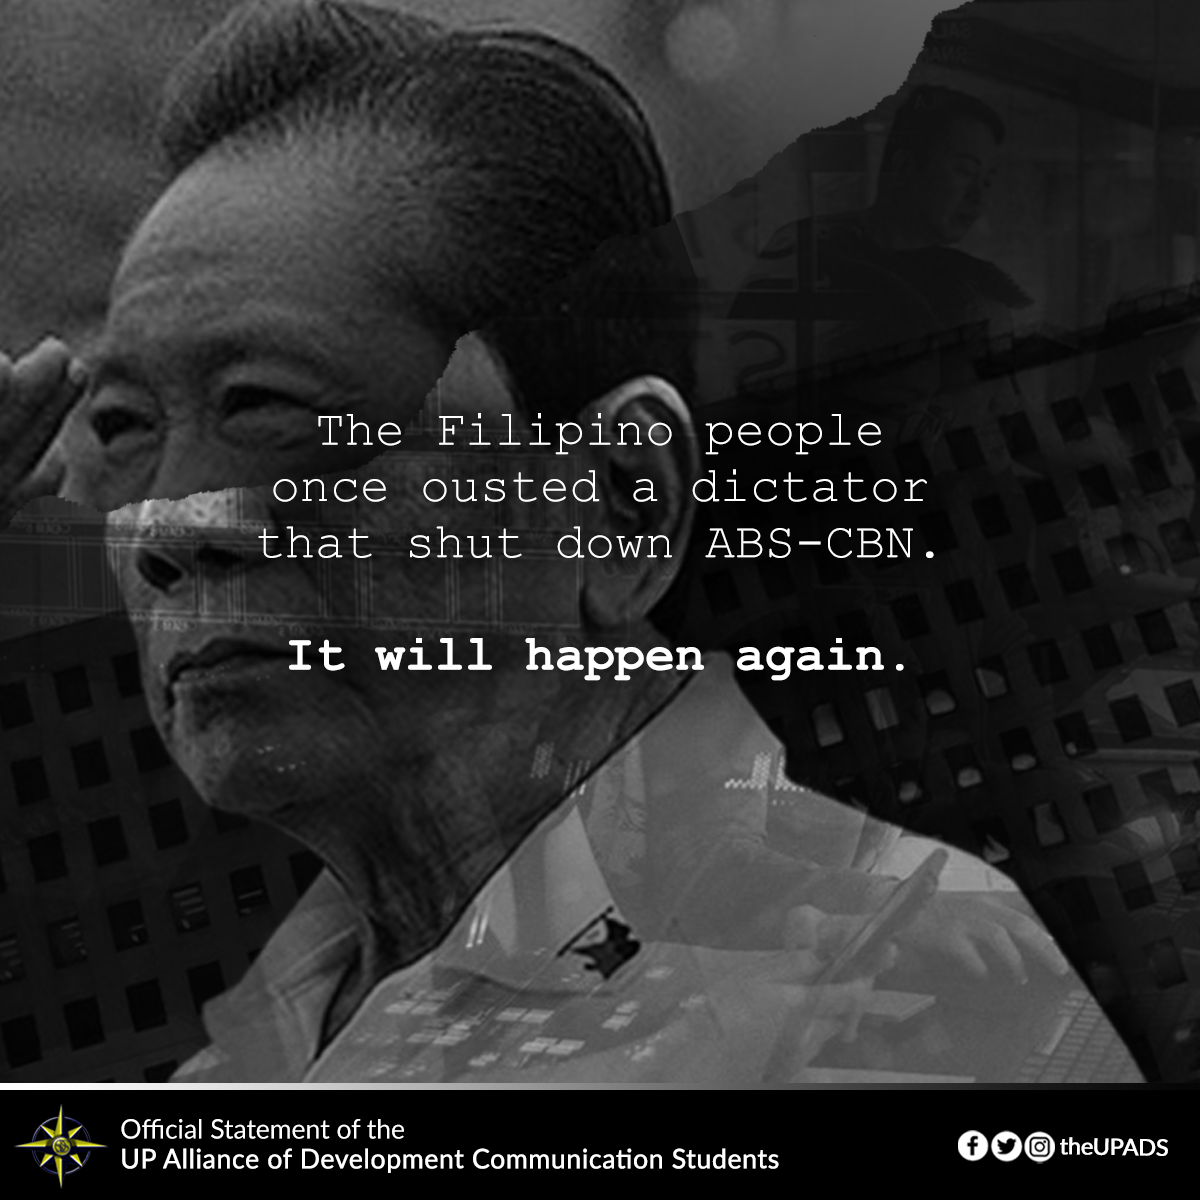 The Filipino people once ousted a dictator that shut down ABS-CBN. It will happen again.  Read full statement: https://bit.ly/2Ogy8Y1  #OustDuterte #DefendPressFreedom #NoToABSCBNFranchiseDenialpic.twitter.com/tSqo3DrvzO